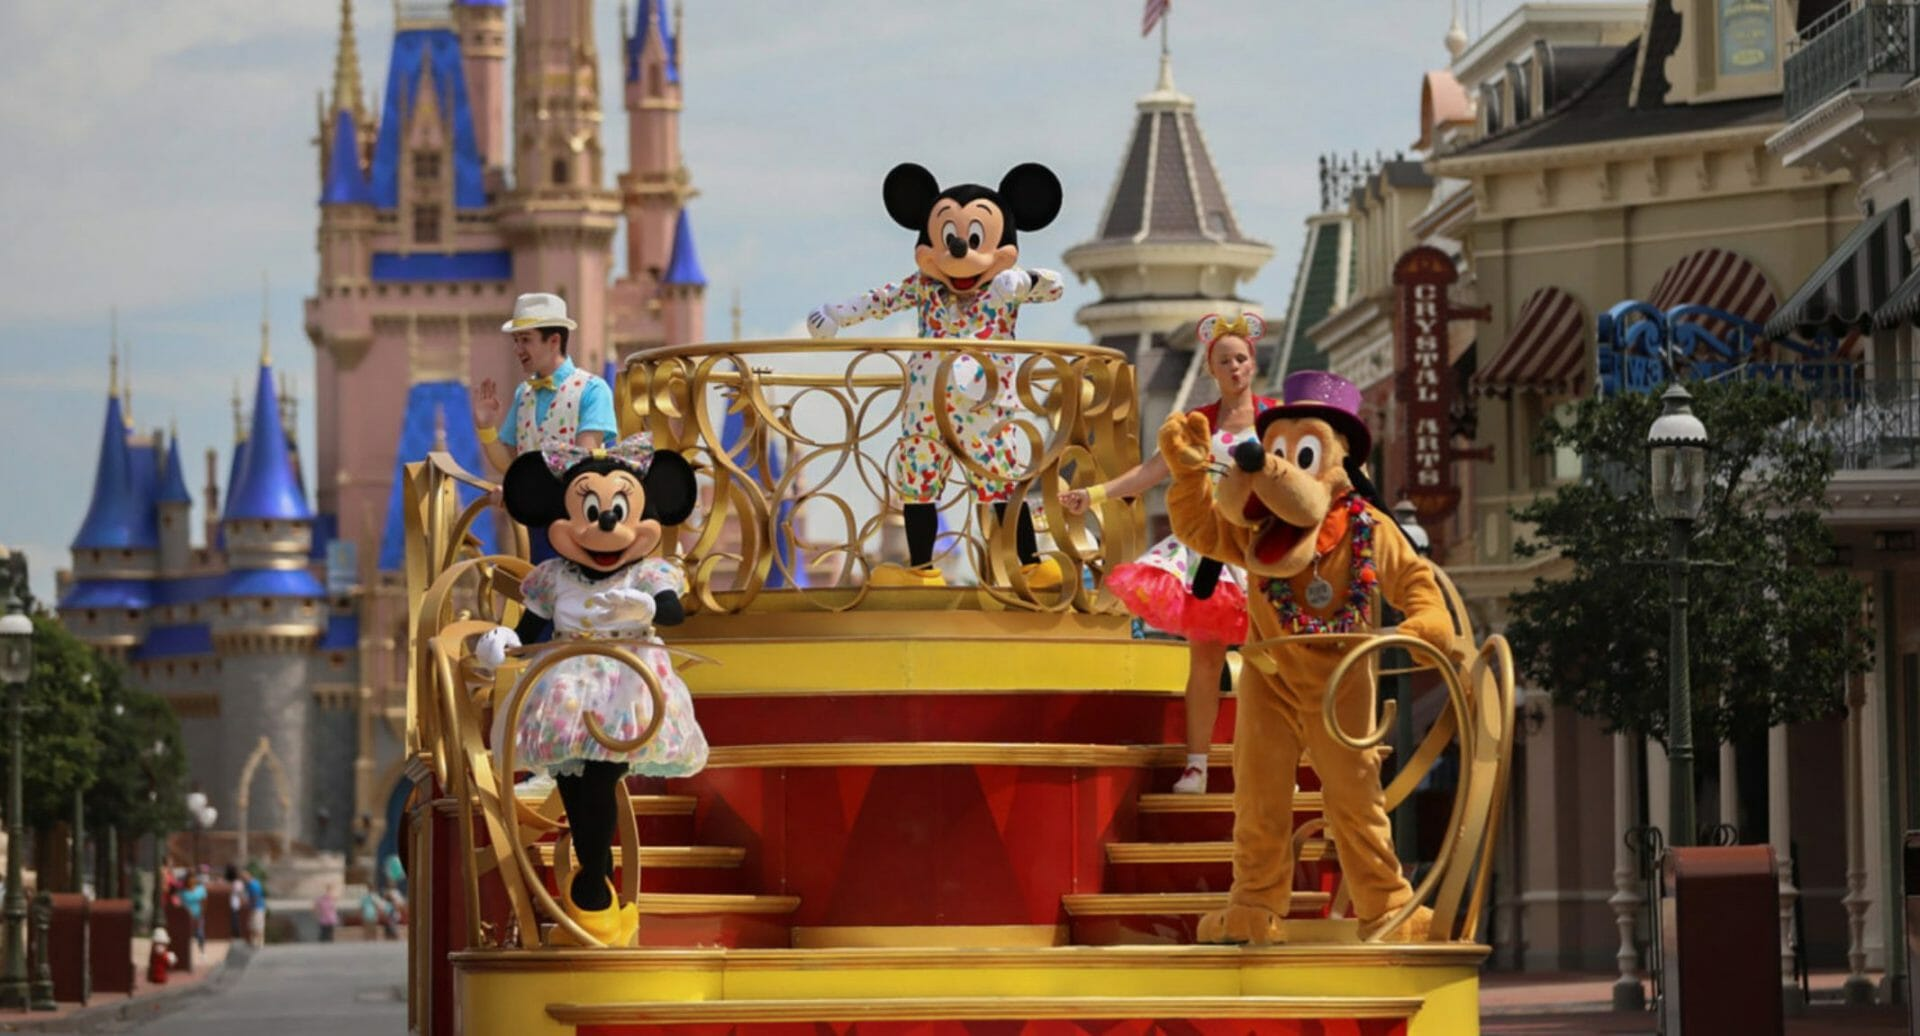 Where to Find Characters When Walt Disney World Reopens